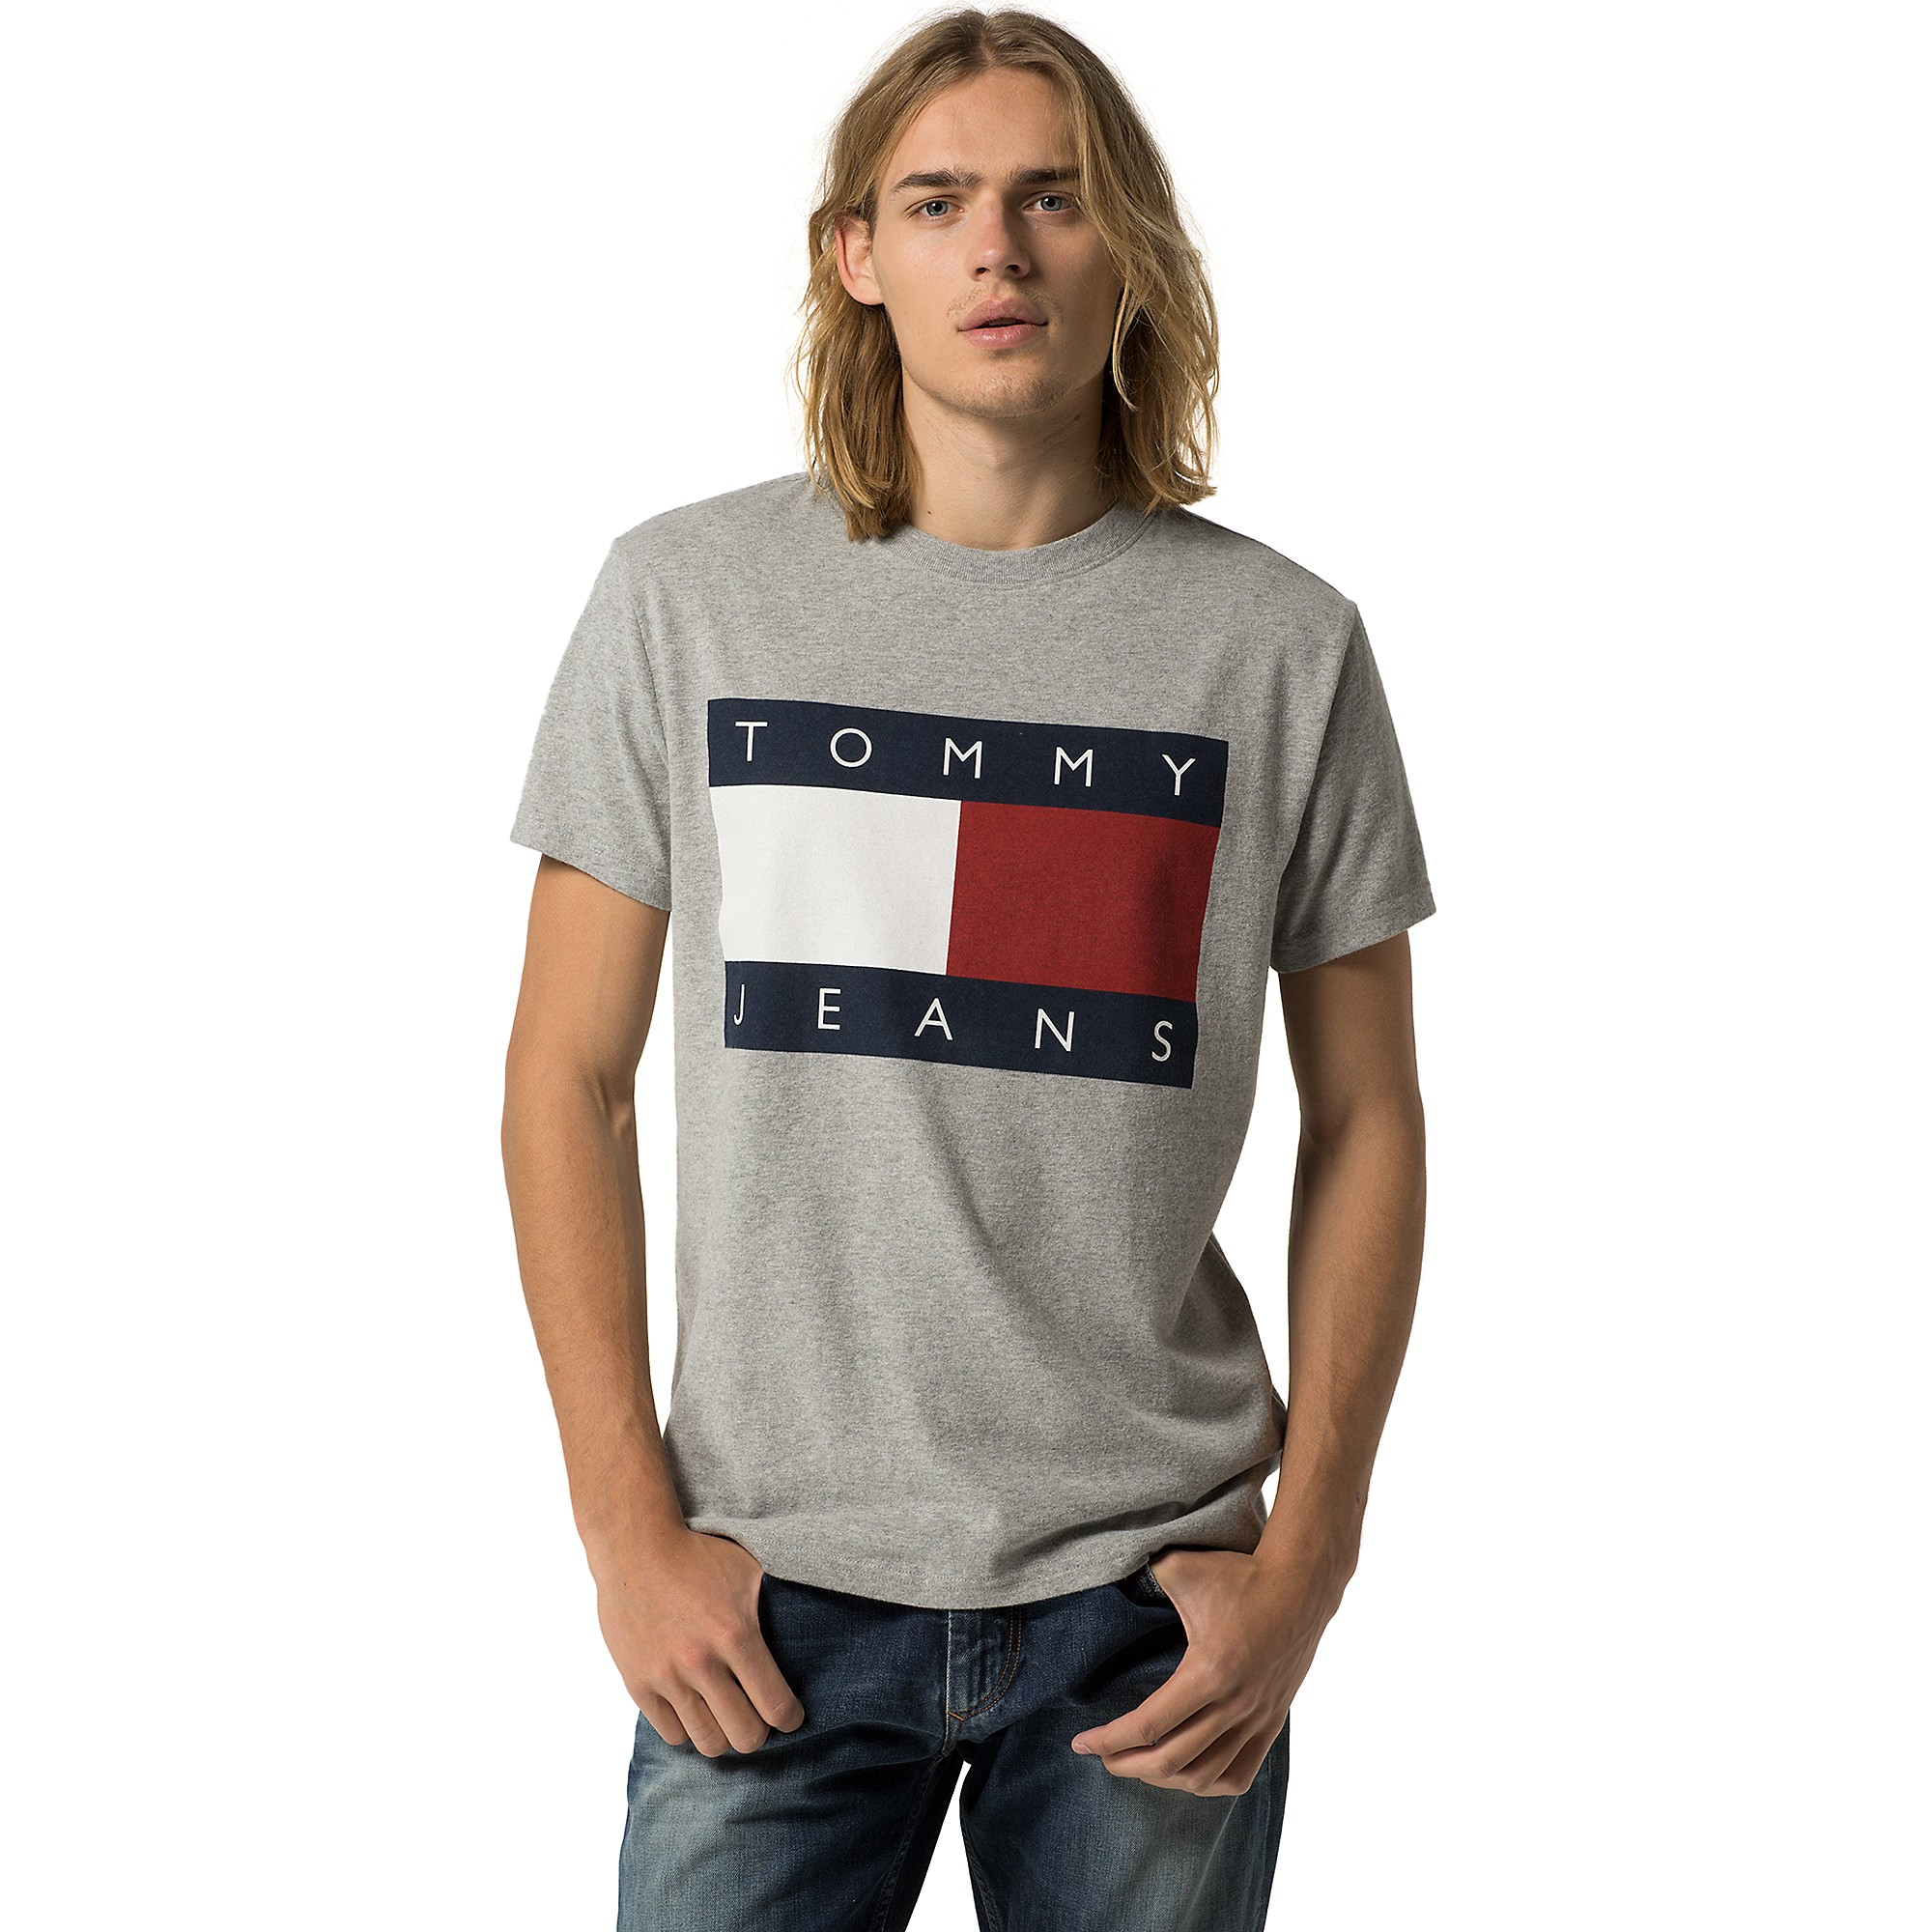 tommy hilfiger hilfiger denim flag tee in gray for men. Black Bedroom Furniture Sets. Home Design Ideas